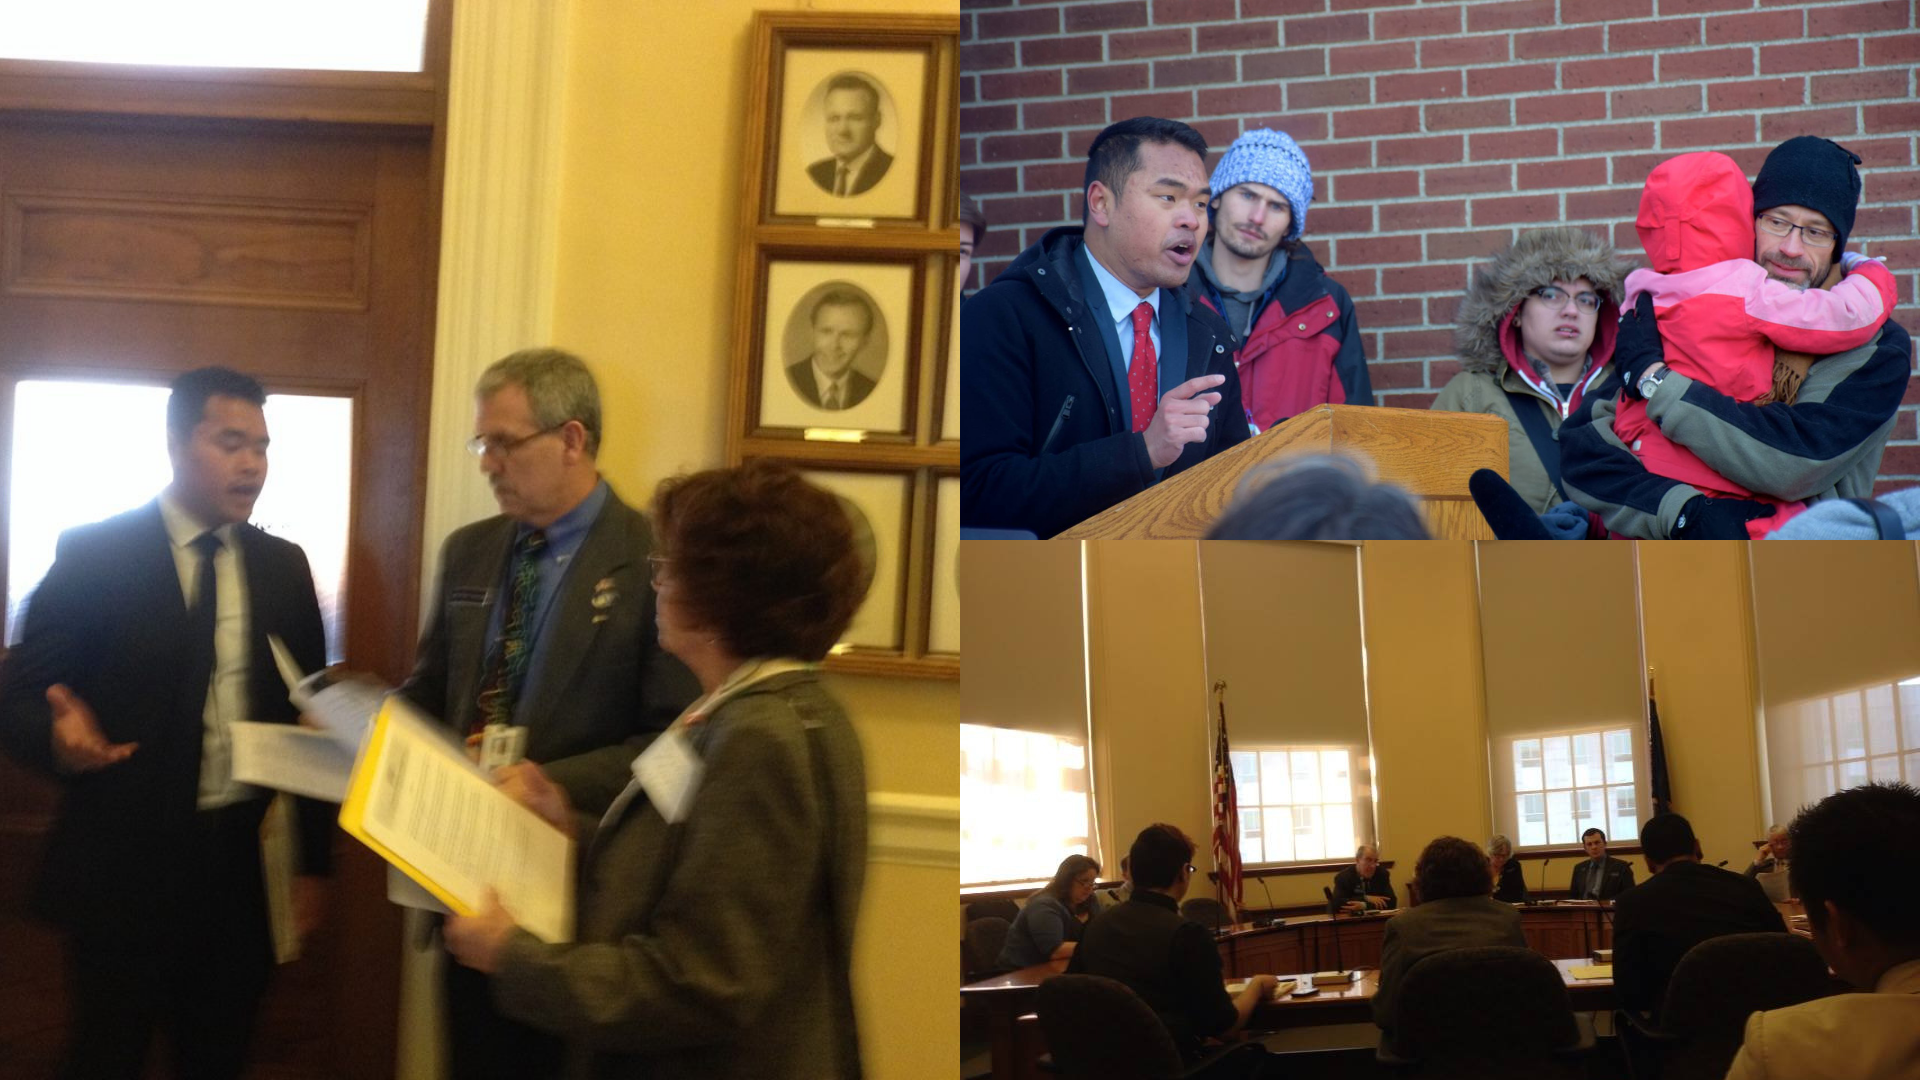 2014 - Later that spring, budget cuts at USM prompted student protest. As Student Vice-President, I focused on the part that anemic state funding played in bringing austerity management to USM and the Maine university system. We organized along with the Maine Education Association to lobby legislators to bring about a change.